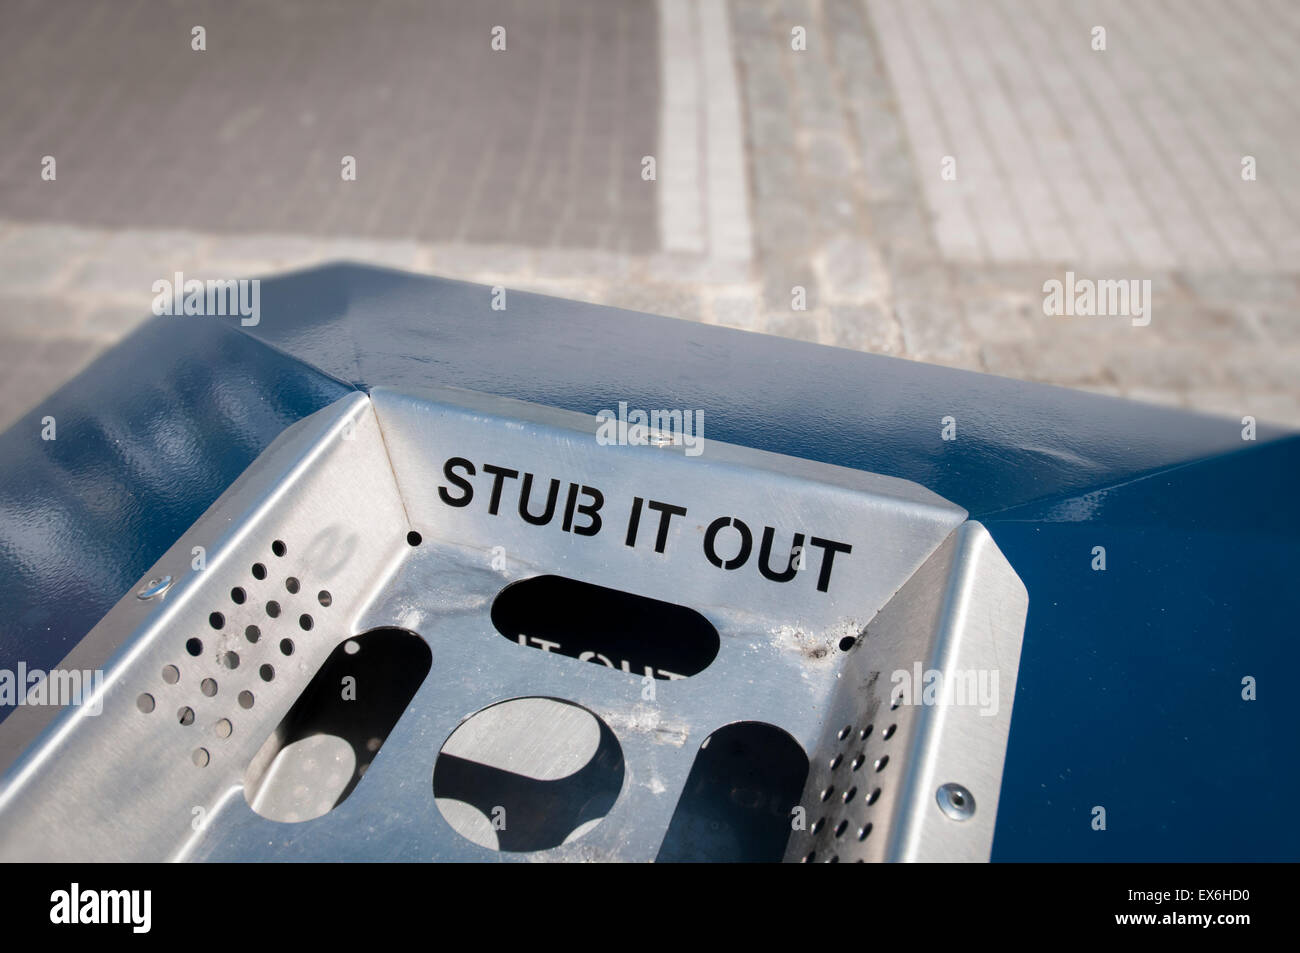 public ashtray in the street with 'stub it out' written on it. - Stock Image